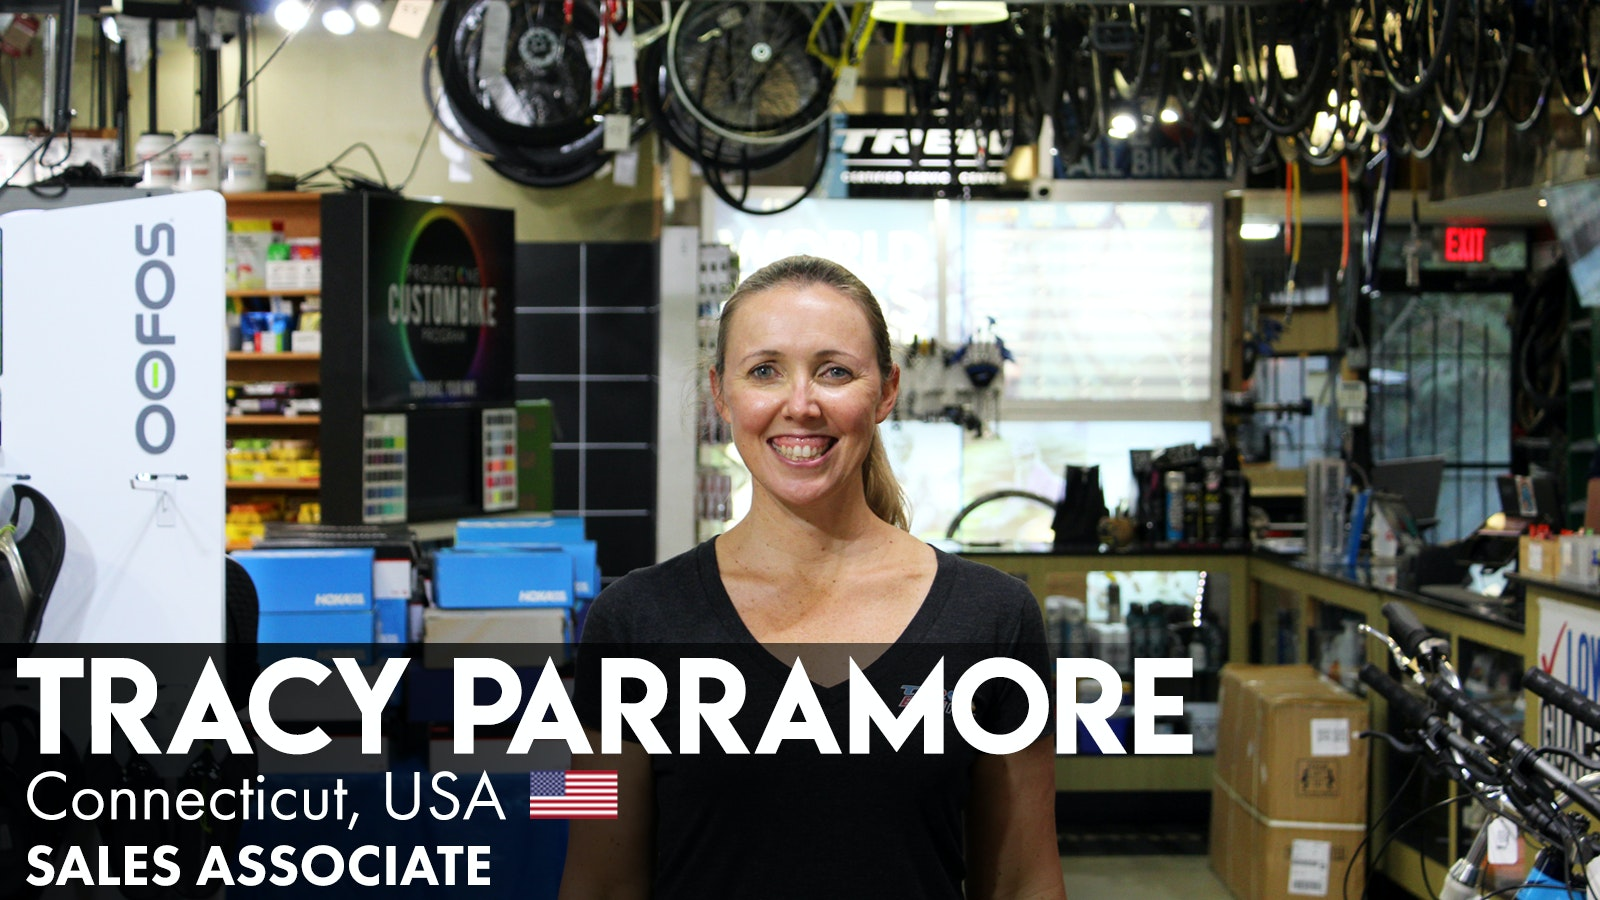 Tracy Parramore